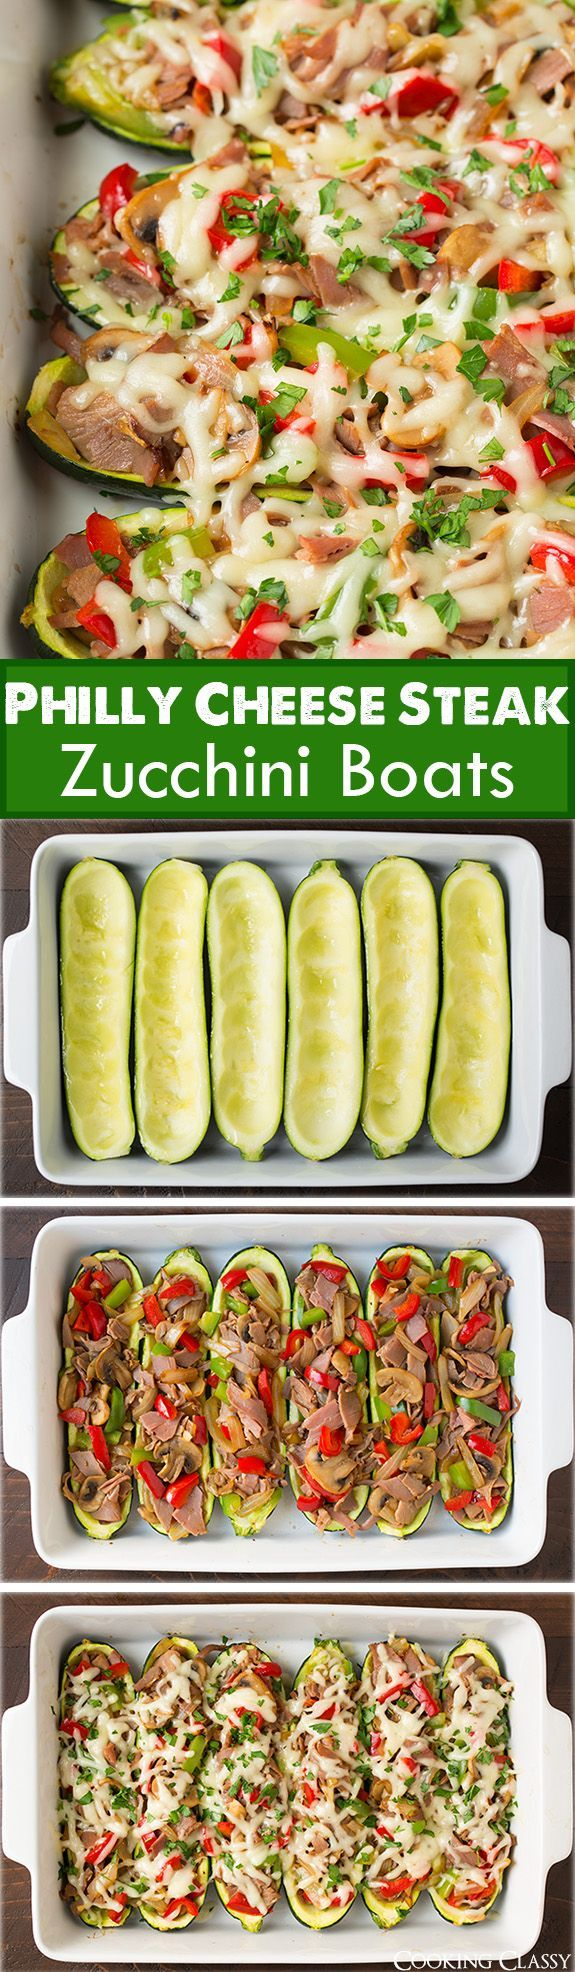 Philly Cheese Steak Zucchini Boats - a delicious low carb alternative to the classic philly cheese steak! Comfort food made healthy.